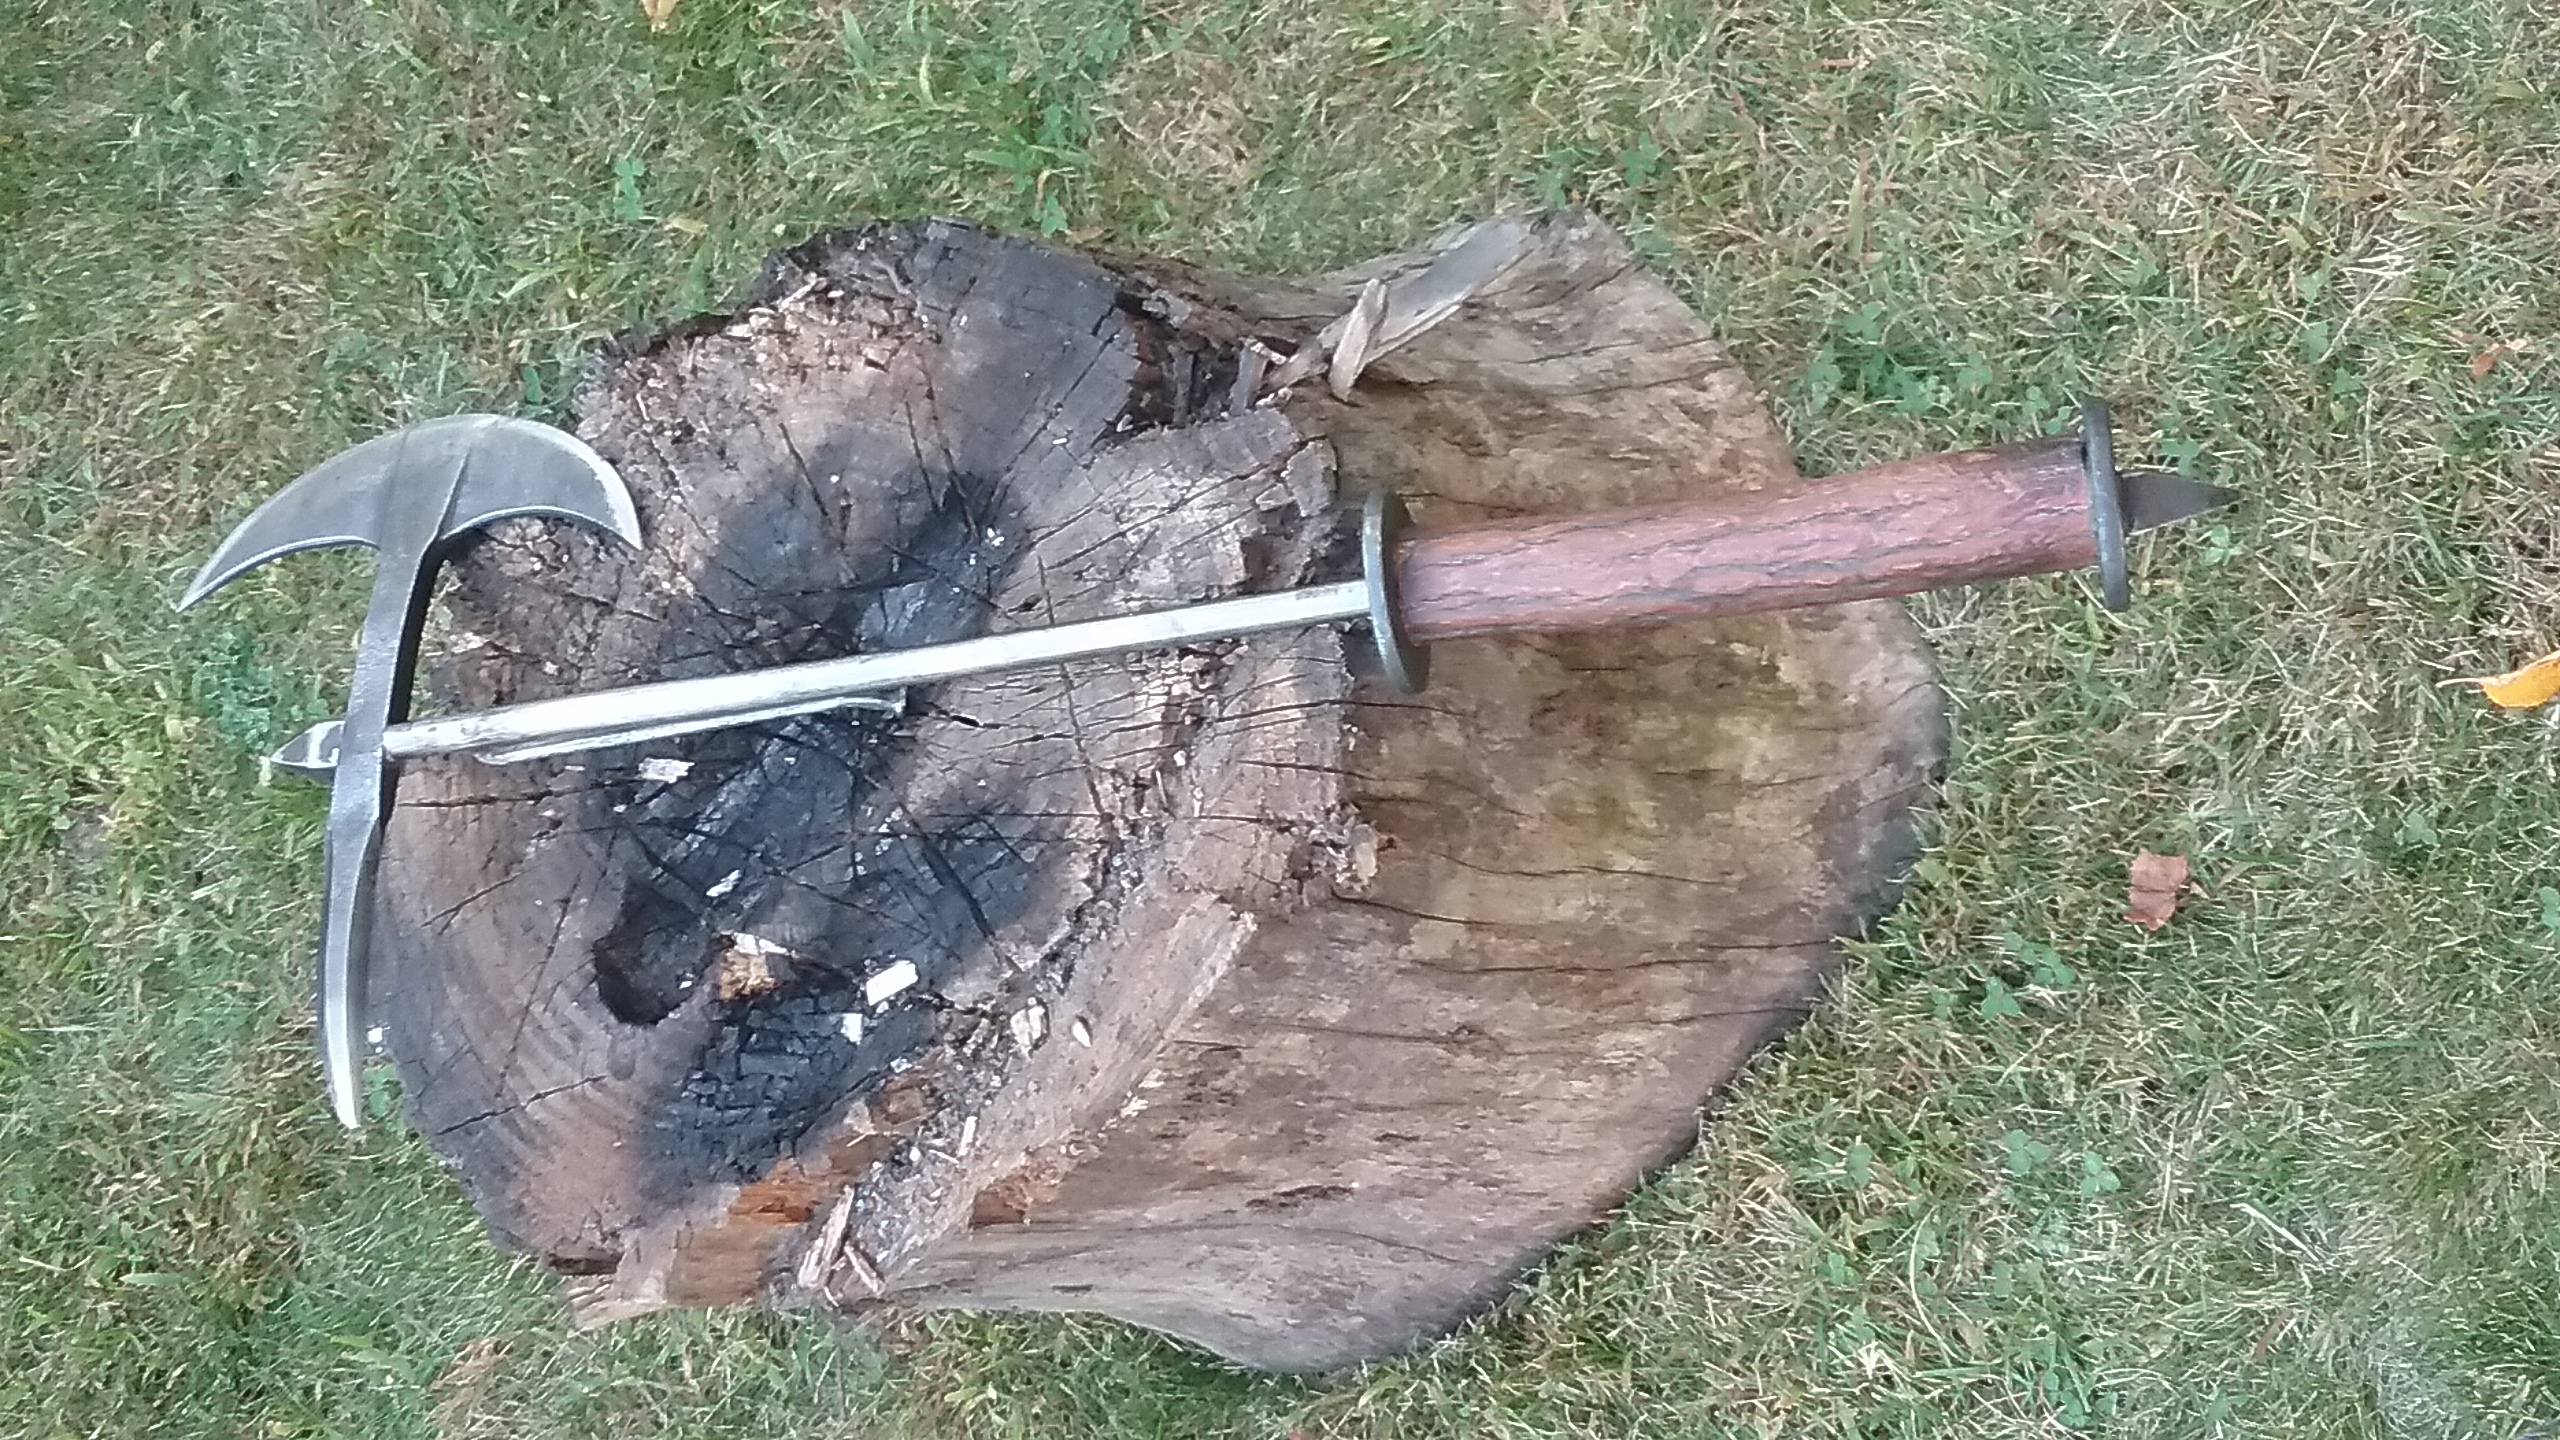 Horsemans Axe